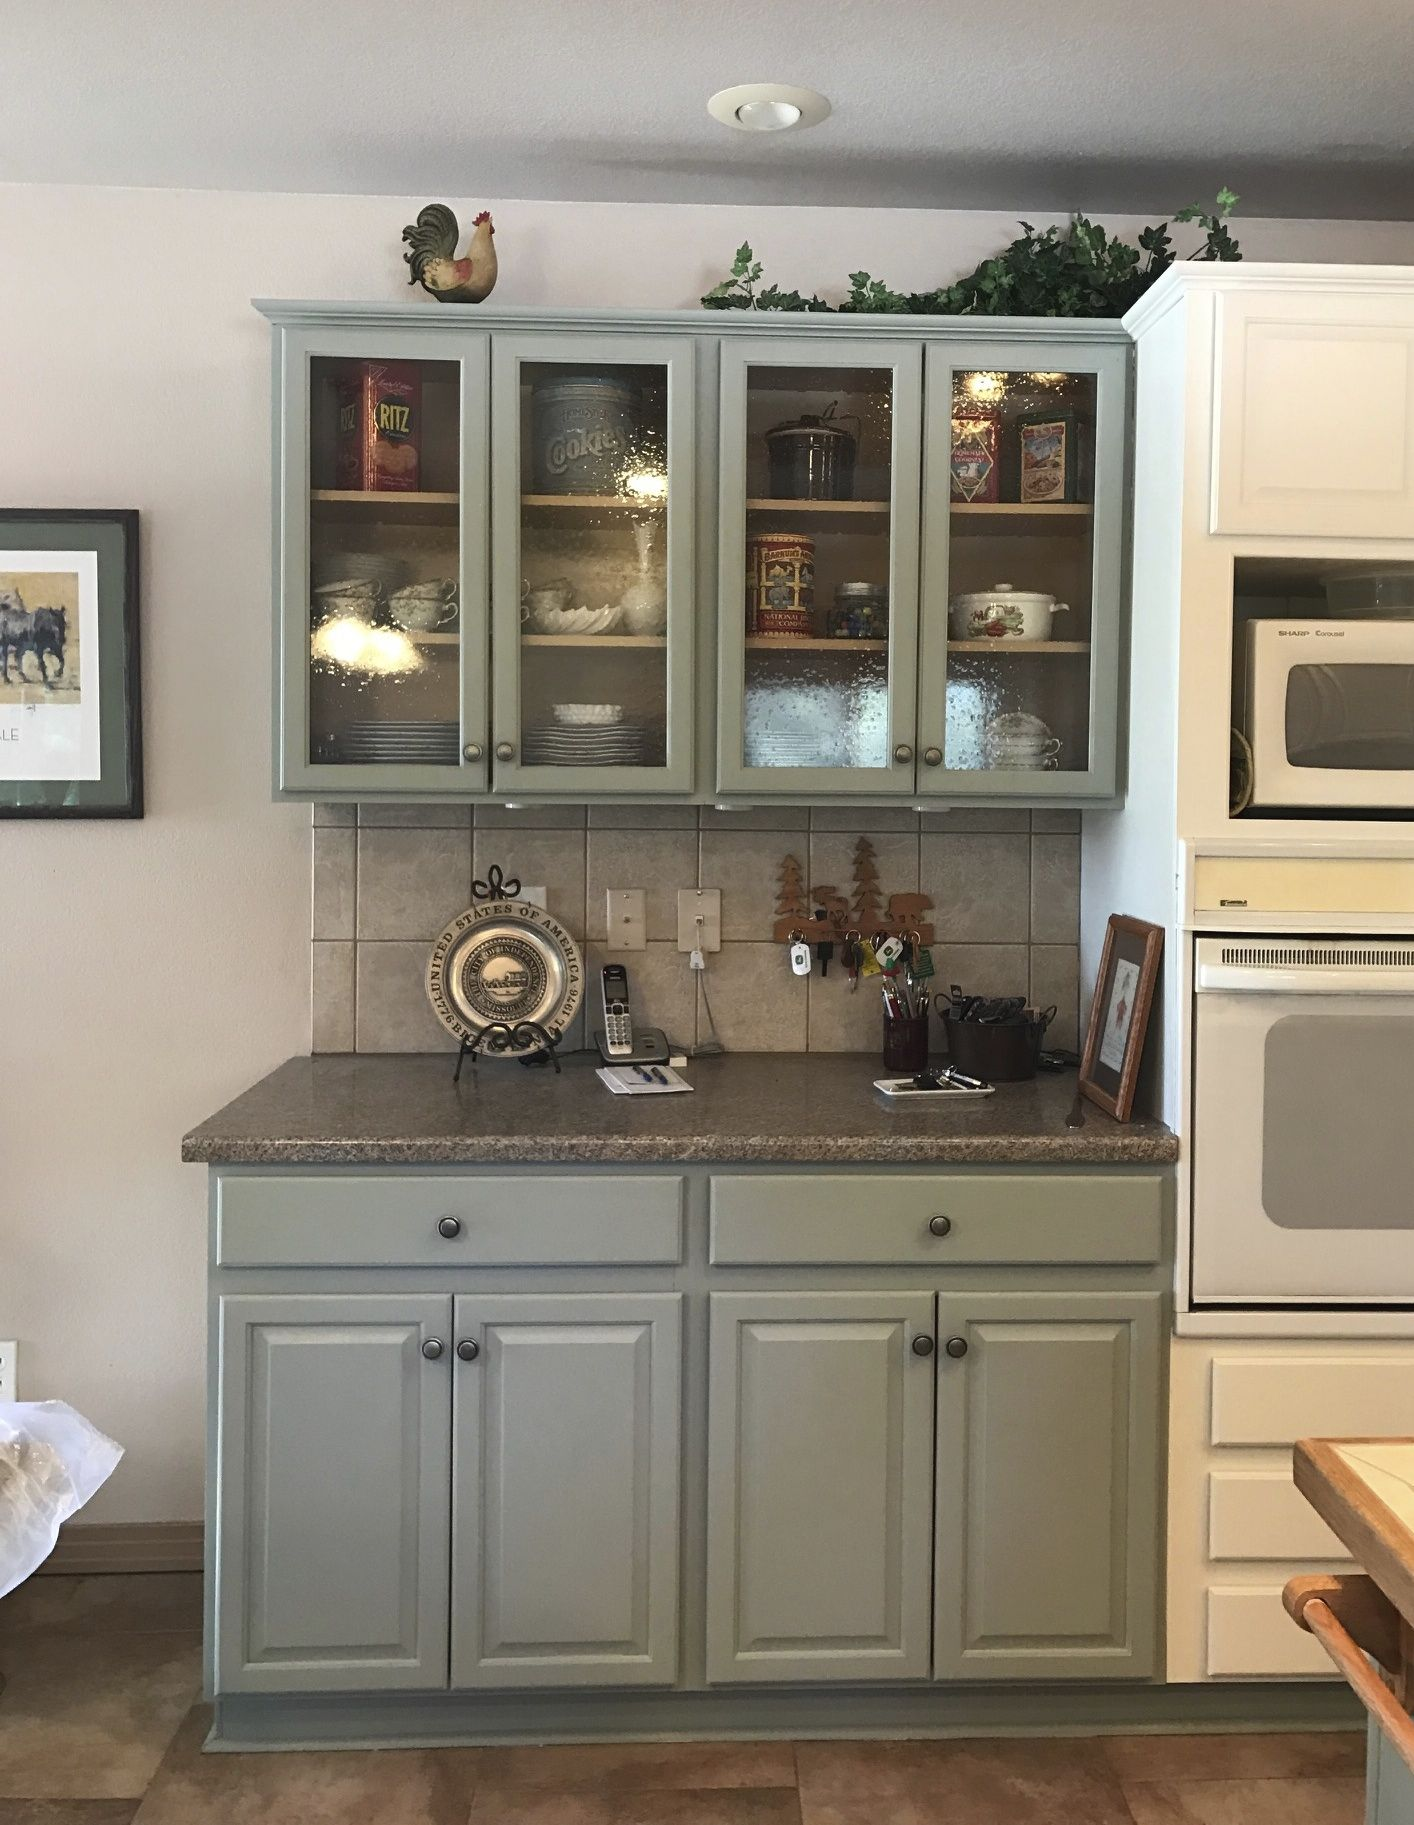 Painted Oak Cabinets And Replaced Upper Panels With Seeded Glass Painting Oak Cabinets Oak Cabinets Painting Oak Cabinets White